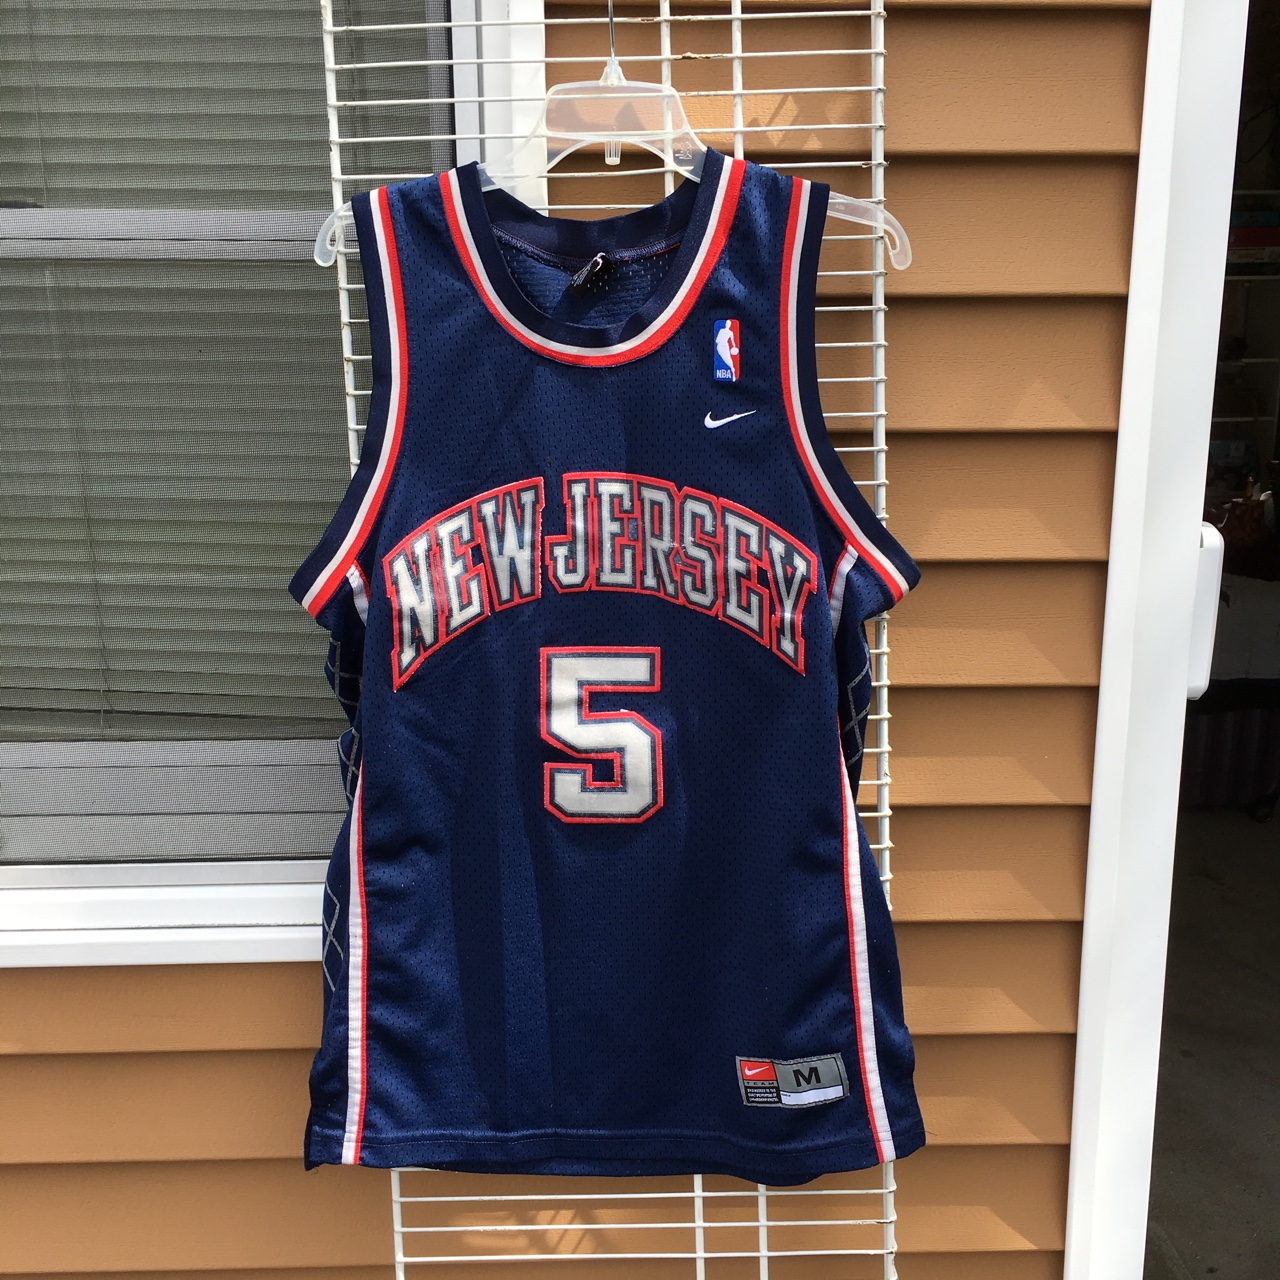 finest selection e509d 11aac Nike Jason Kidd New Jersey Nets jersey. Men's... - Depop